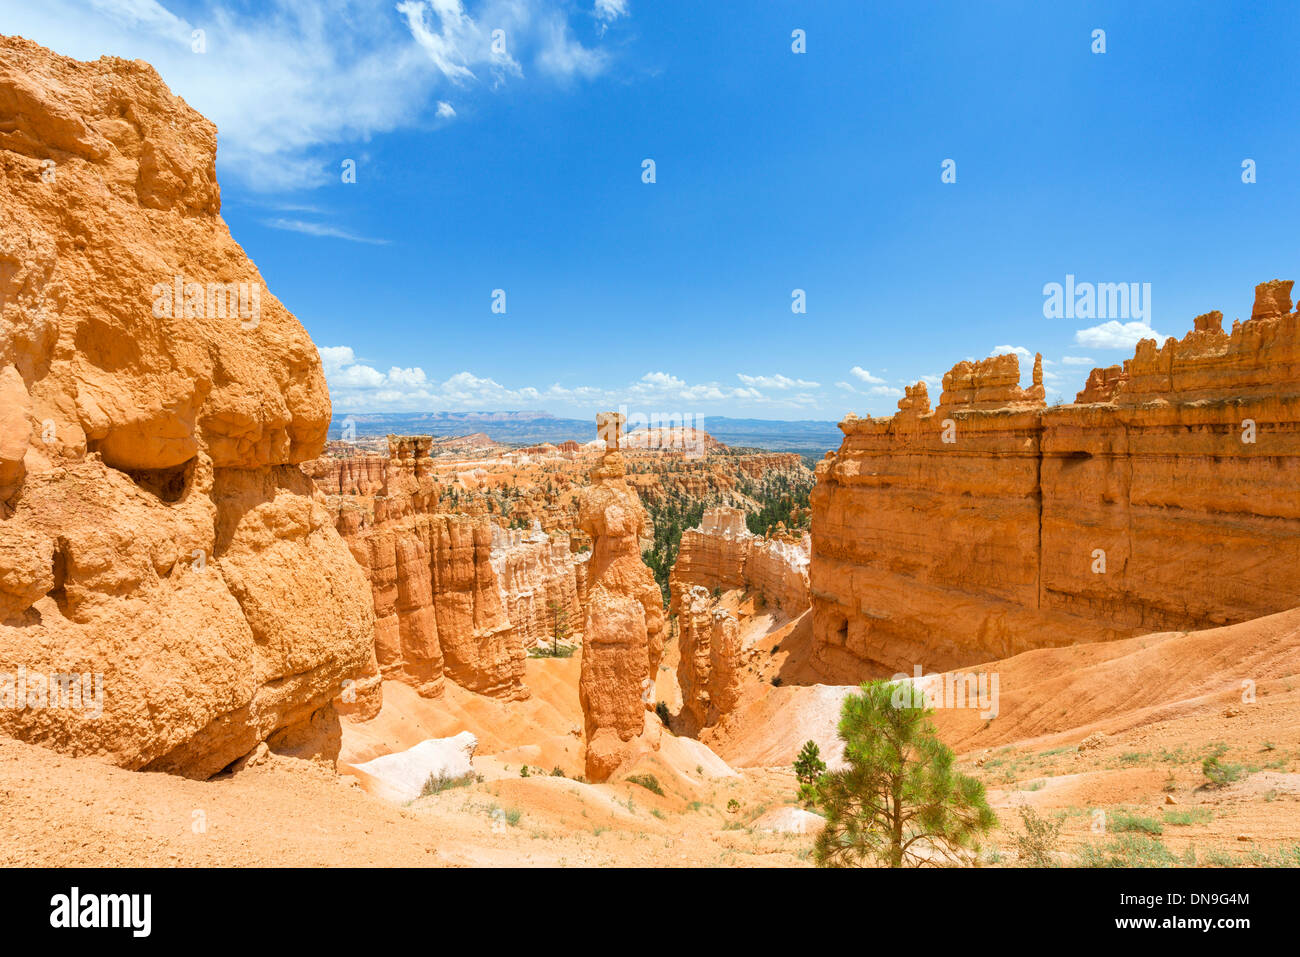 Thors Hammer monolith sur le sentier en boucle Navajo, Sunset Point, Bryce Amphitheater, Bryce Canyon National Park, Utah, USA Photo Stock